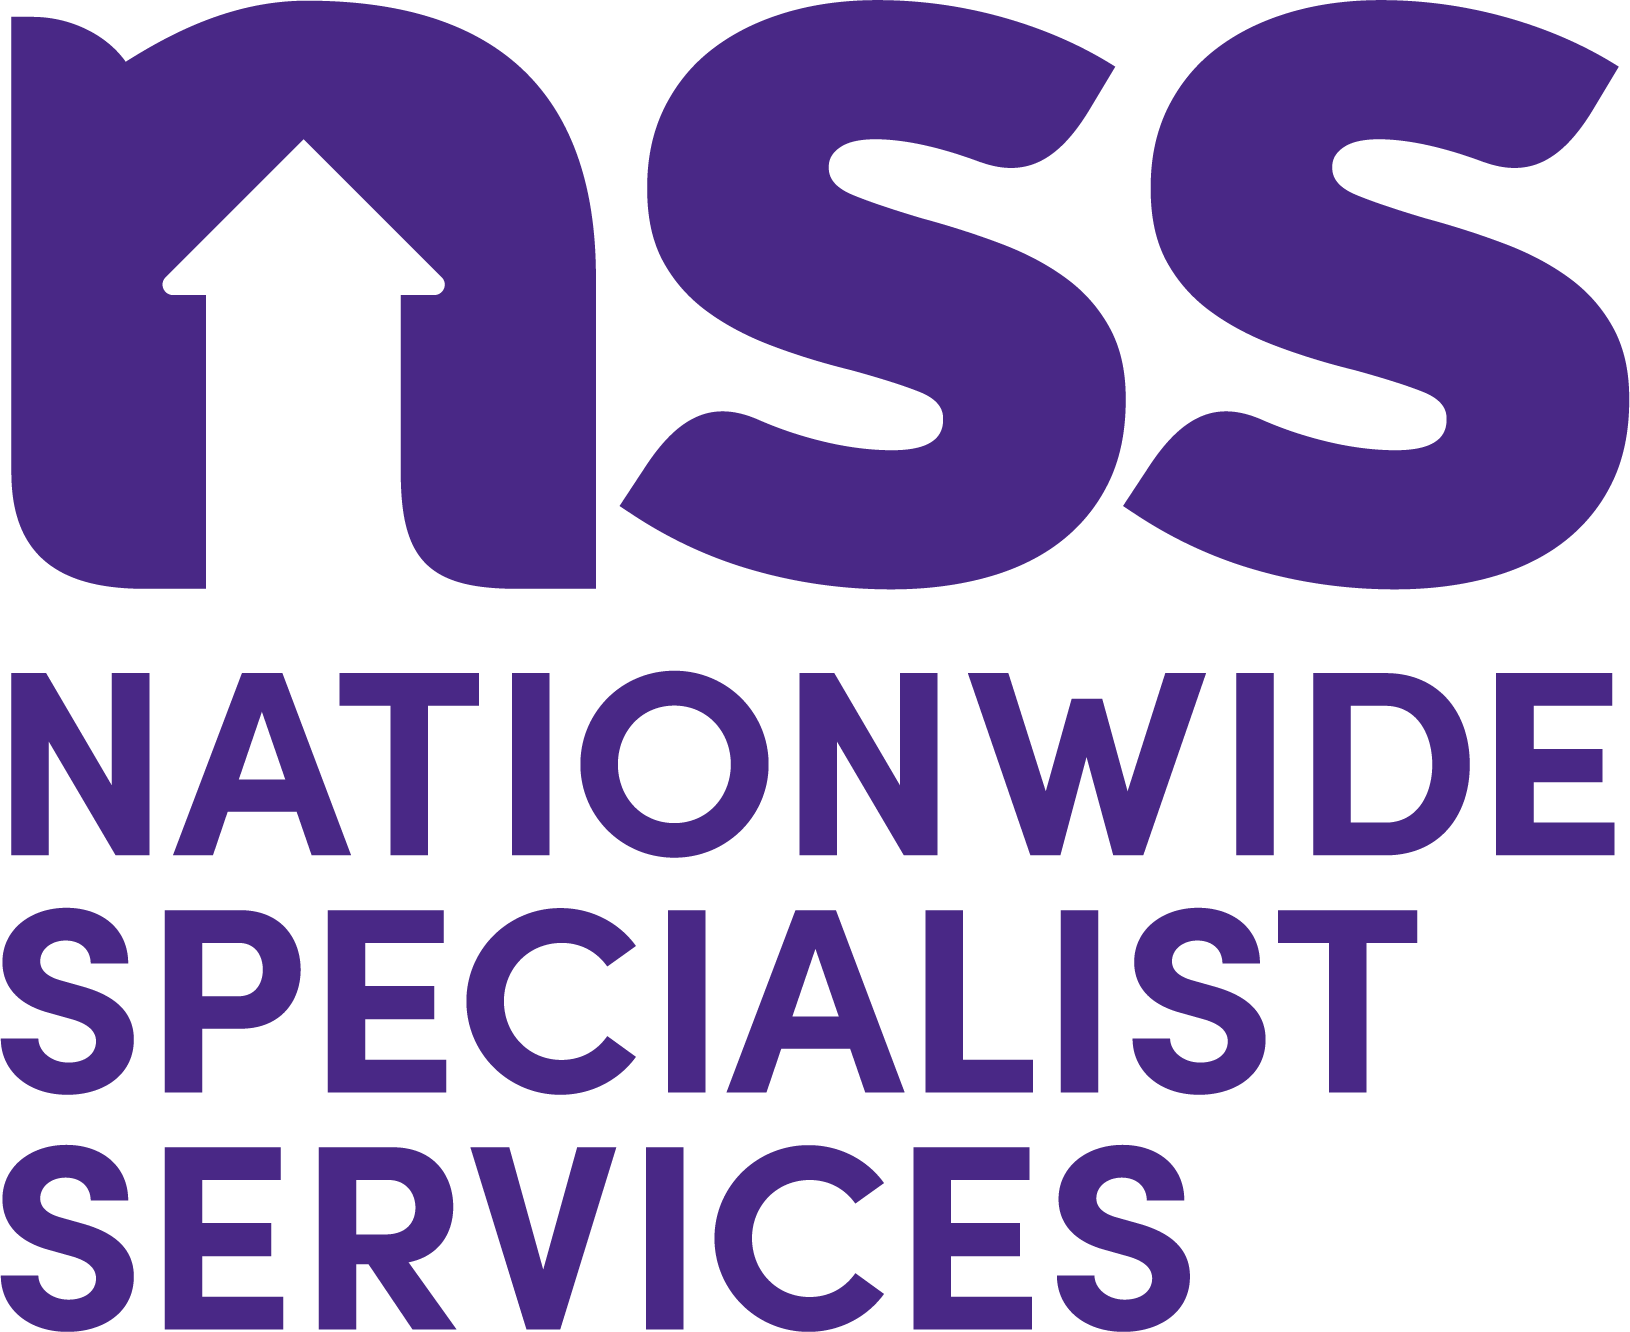 Nationwide Specialist Services